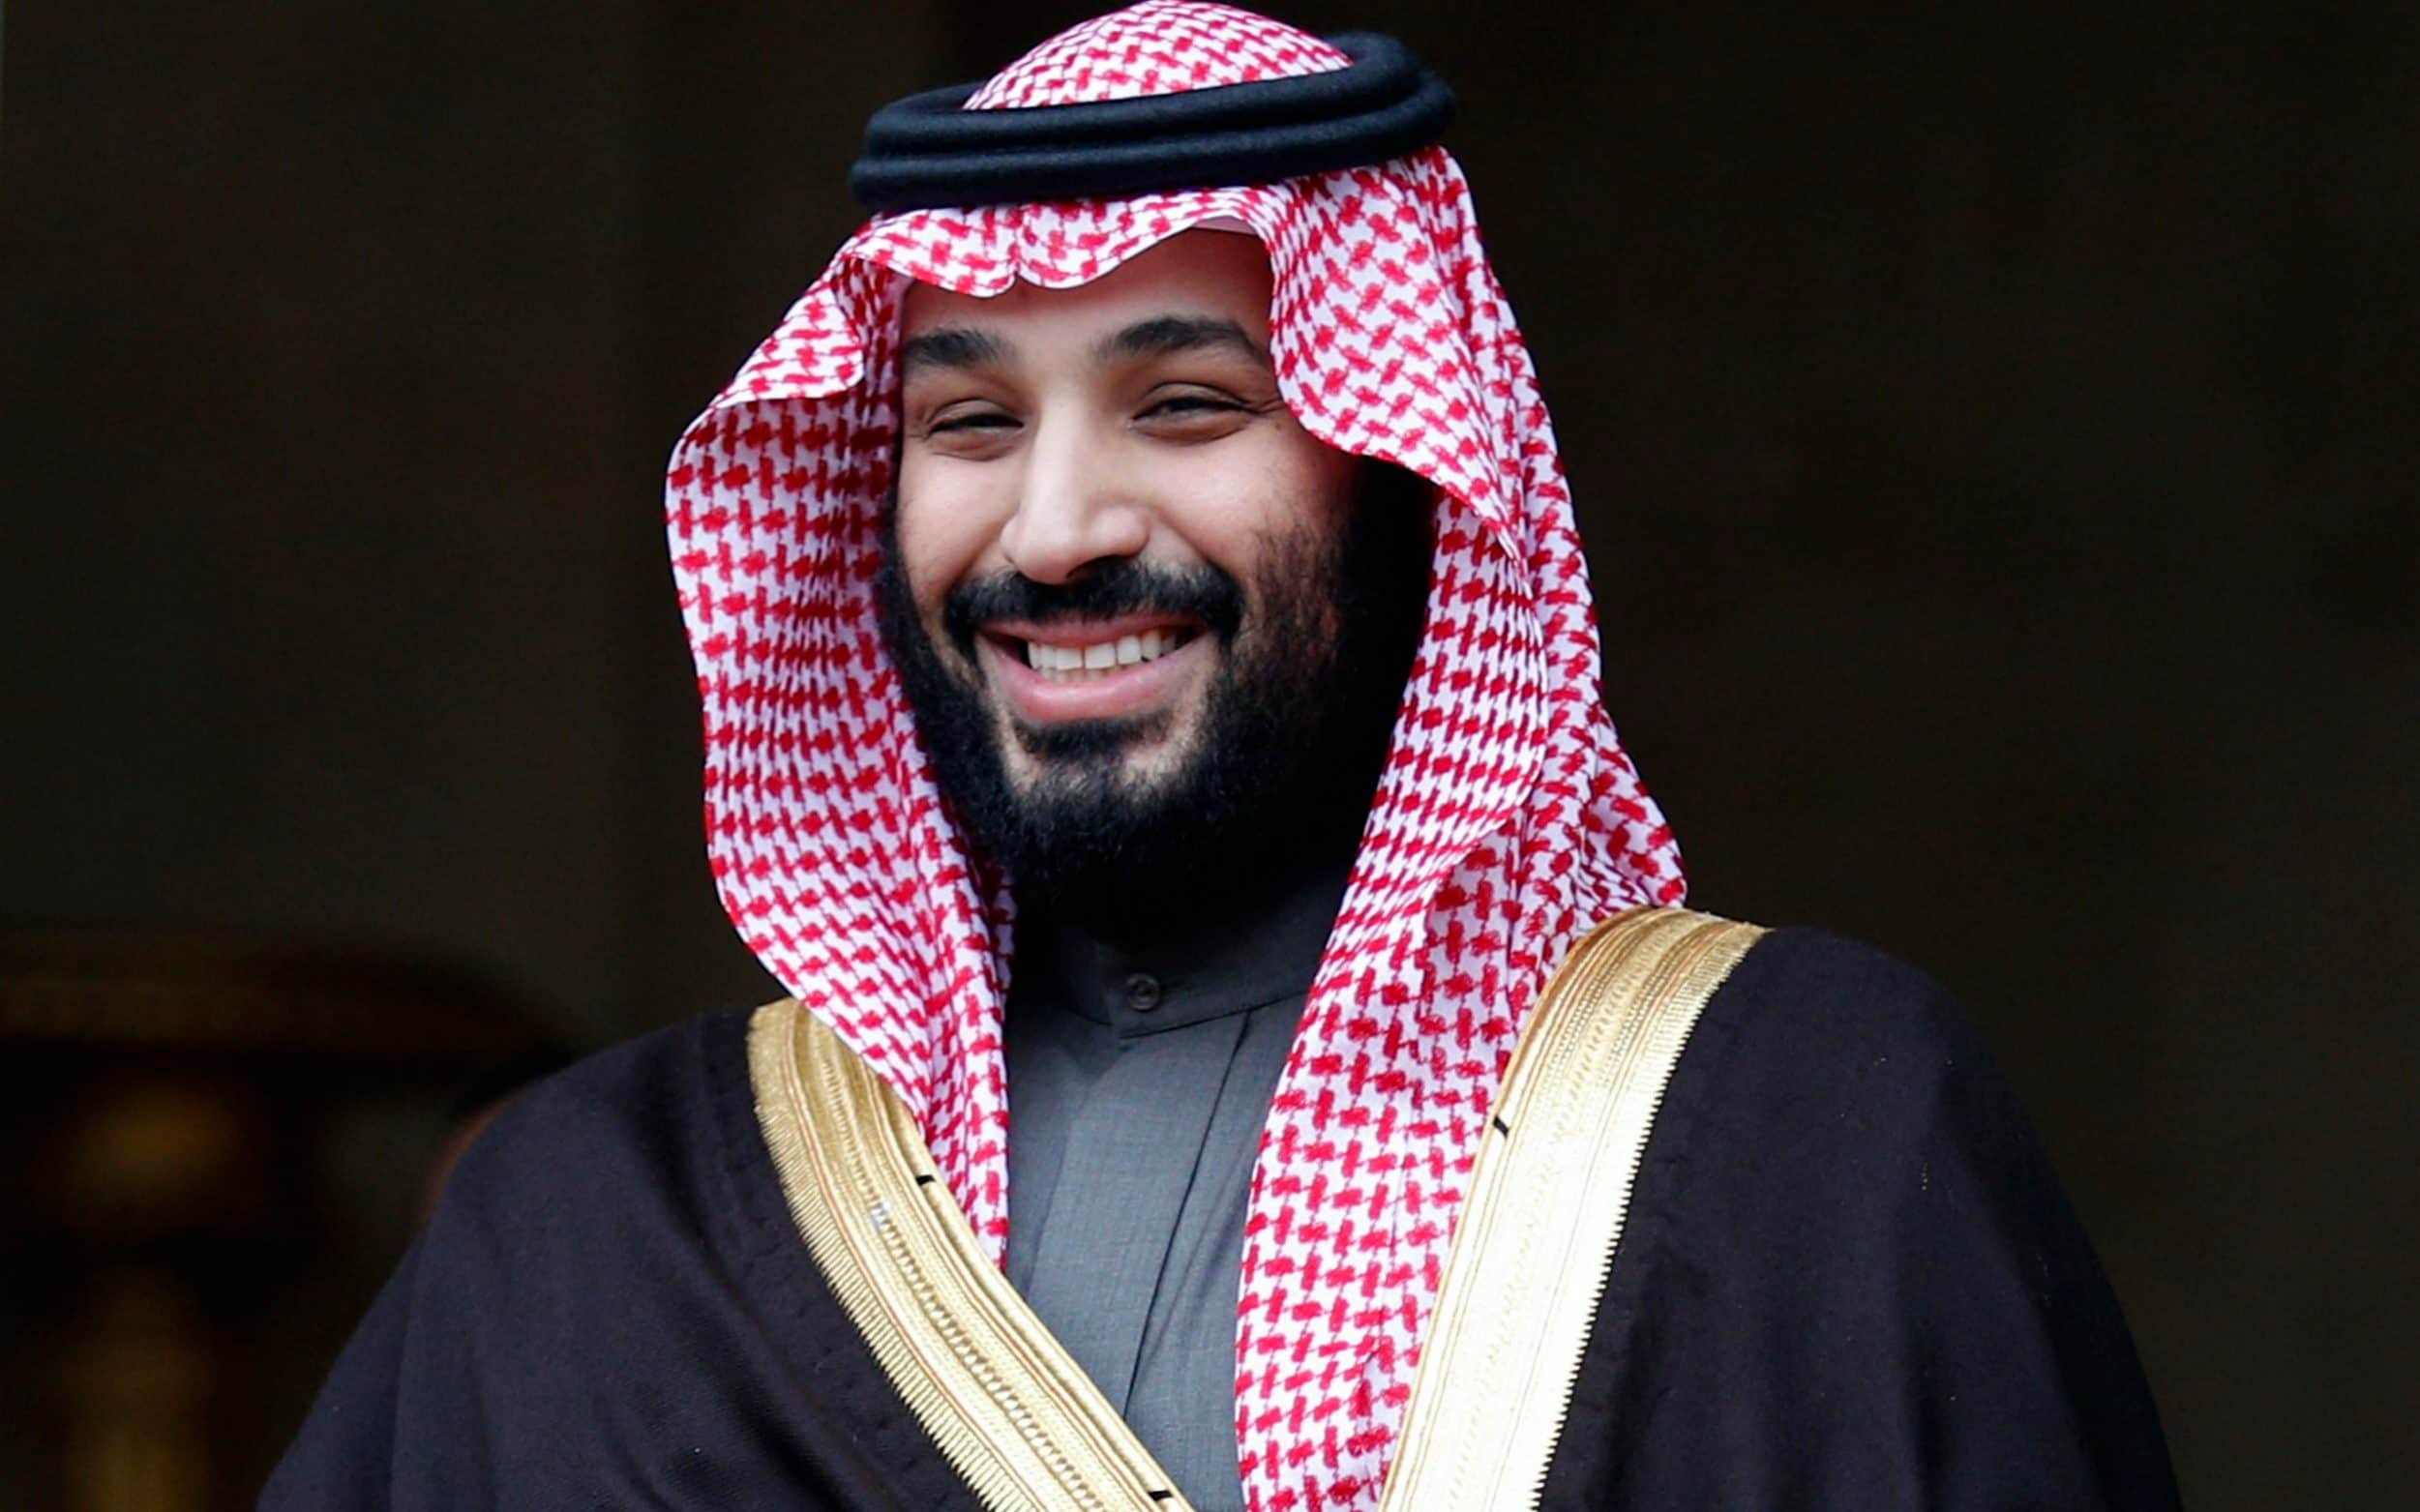 Saudi Arabia bans flogging as a punishment after human rights activist dies in detention